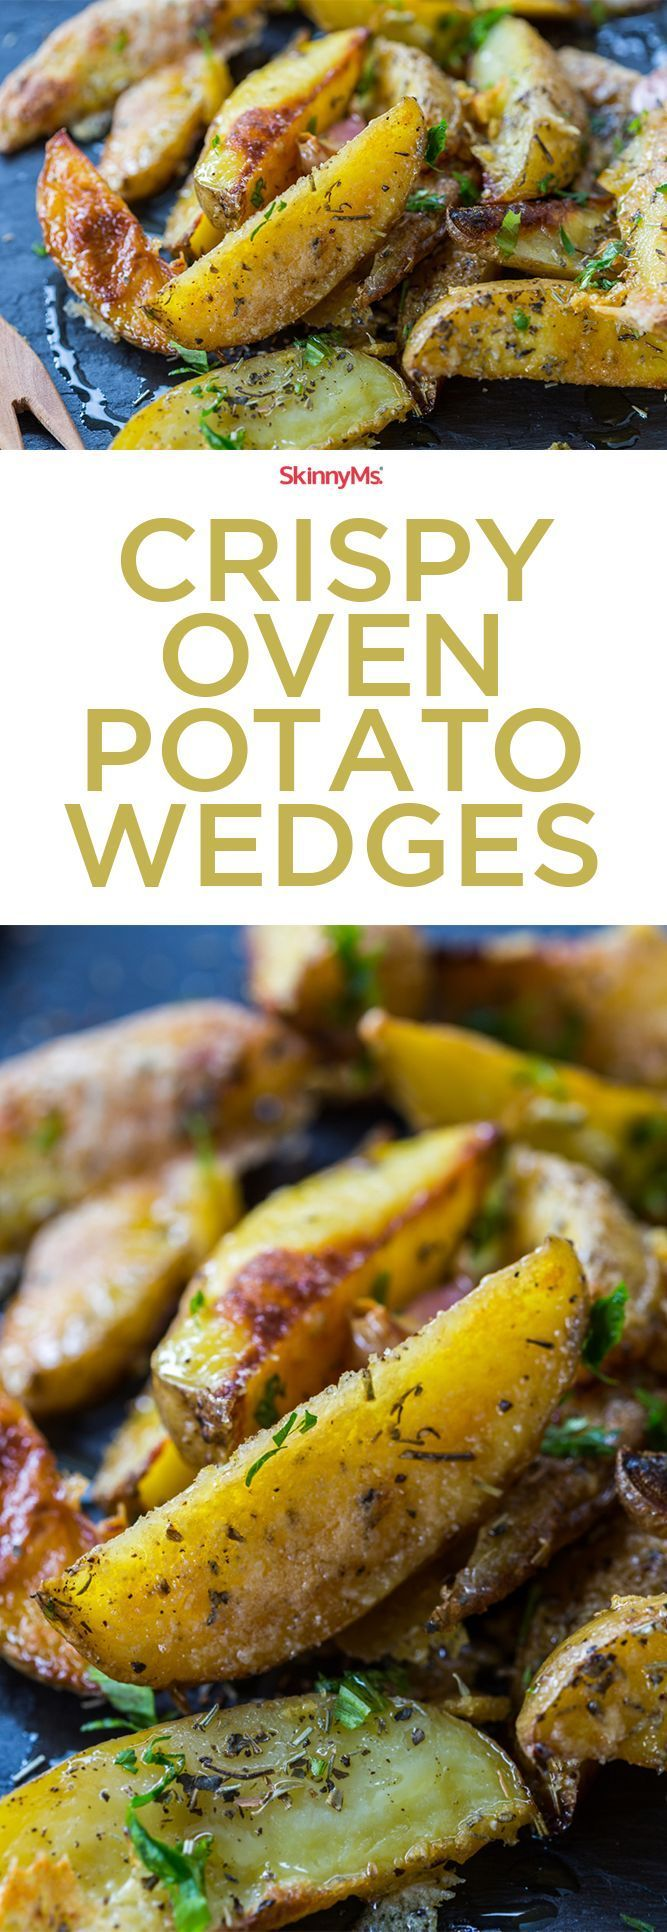 These Crispy Oven Potato Wedges are fresh from the oven and not the fryer. Makes the perfect side dish! #cleaneating